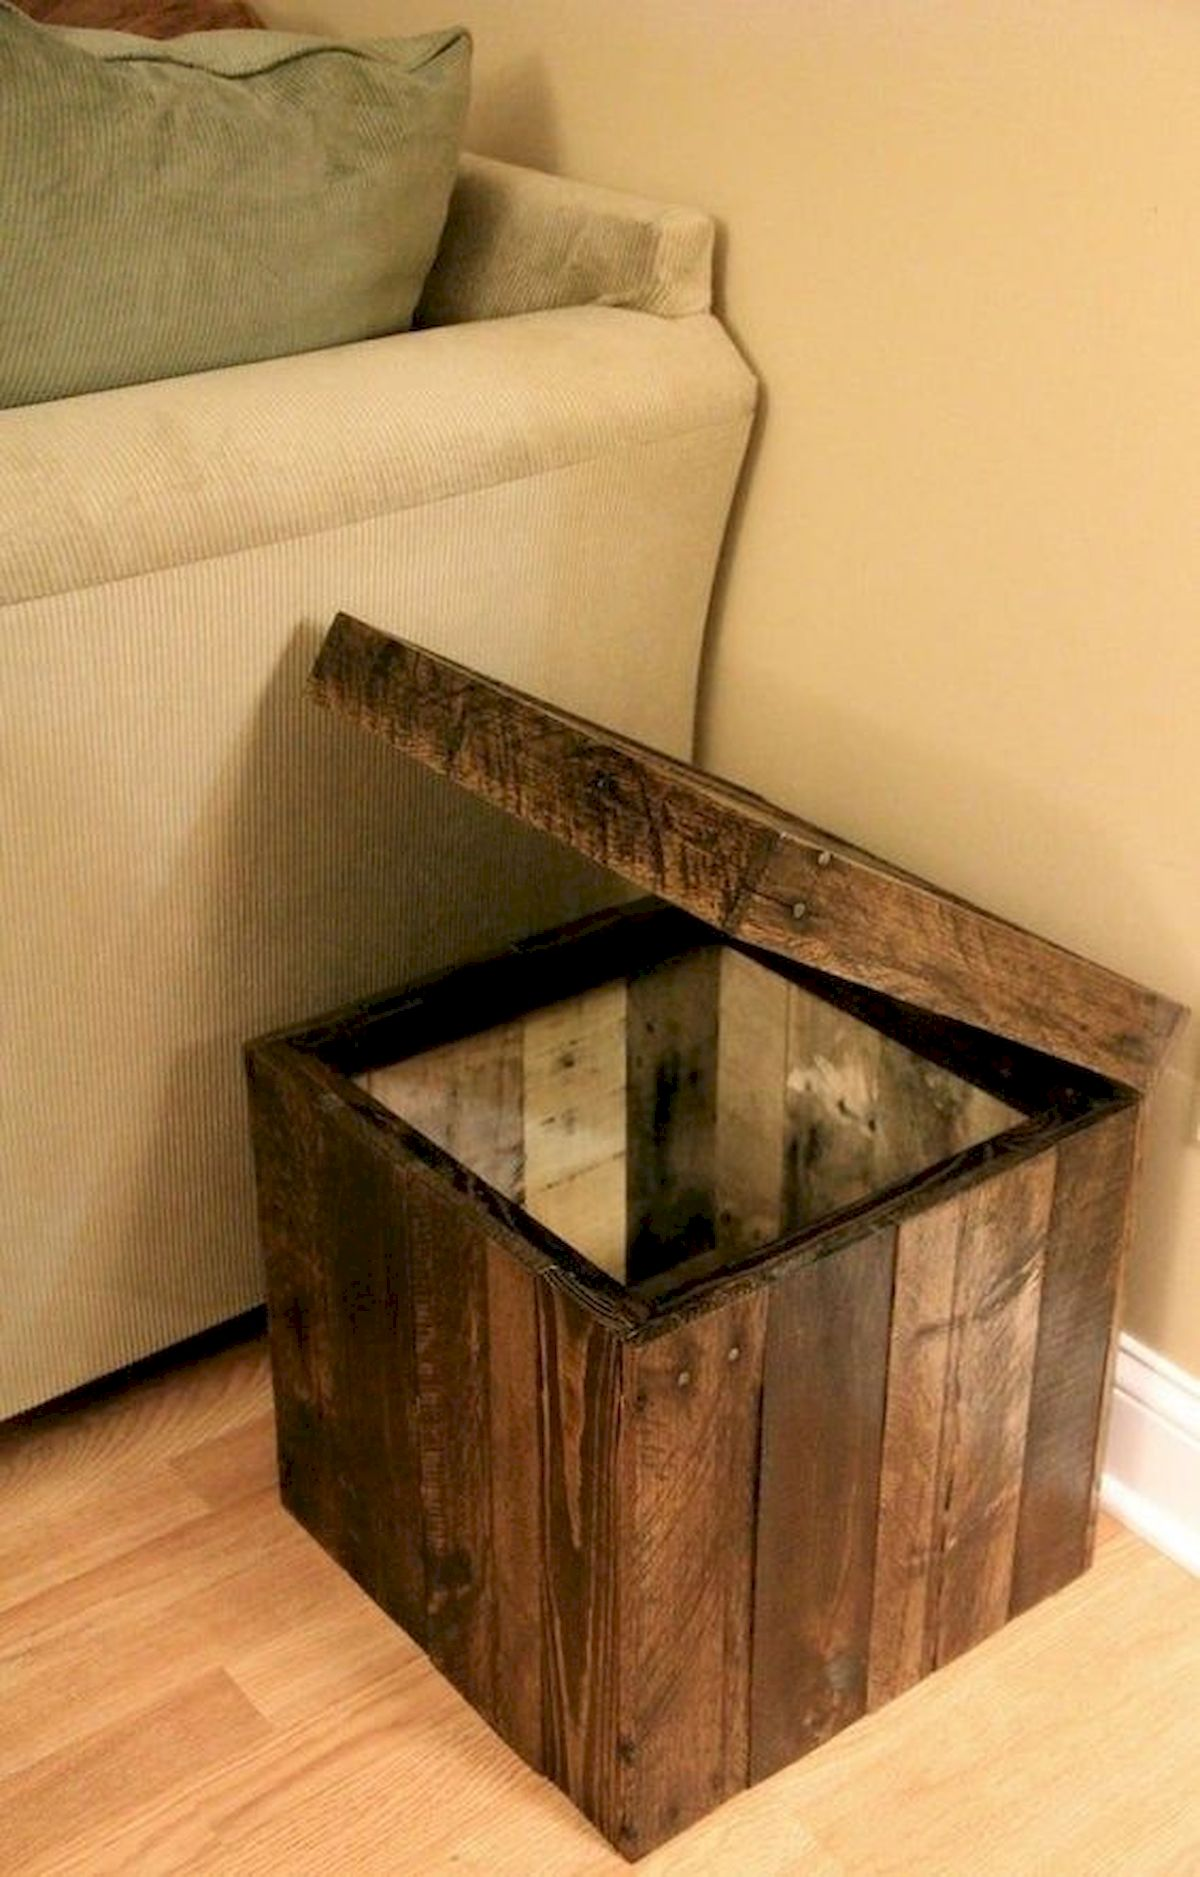 45 Awesome Furniture Ideas for Small House With Wood Project Ideas (40)